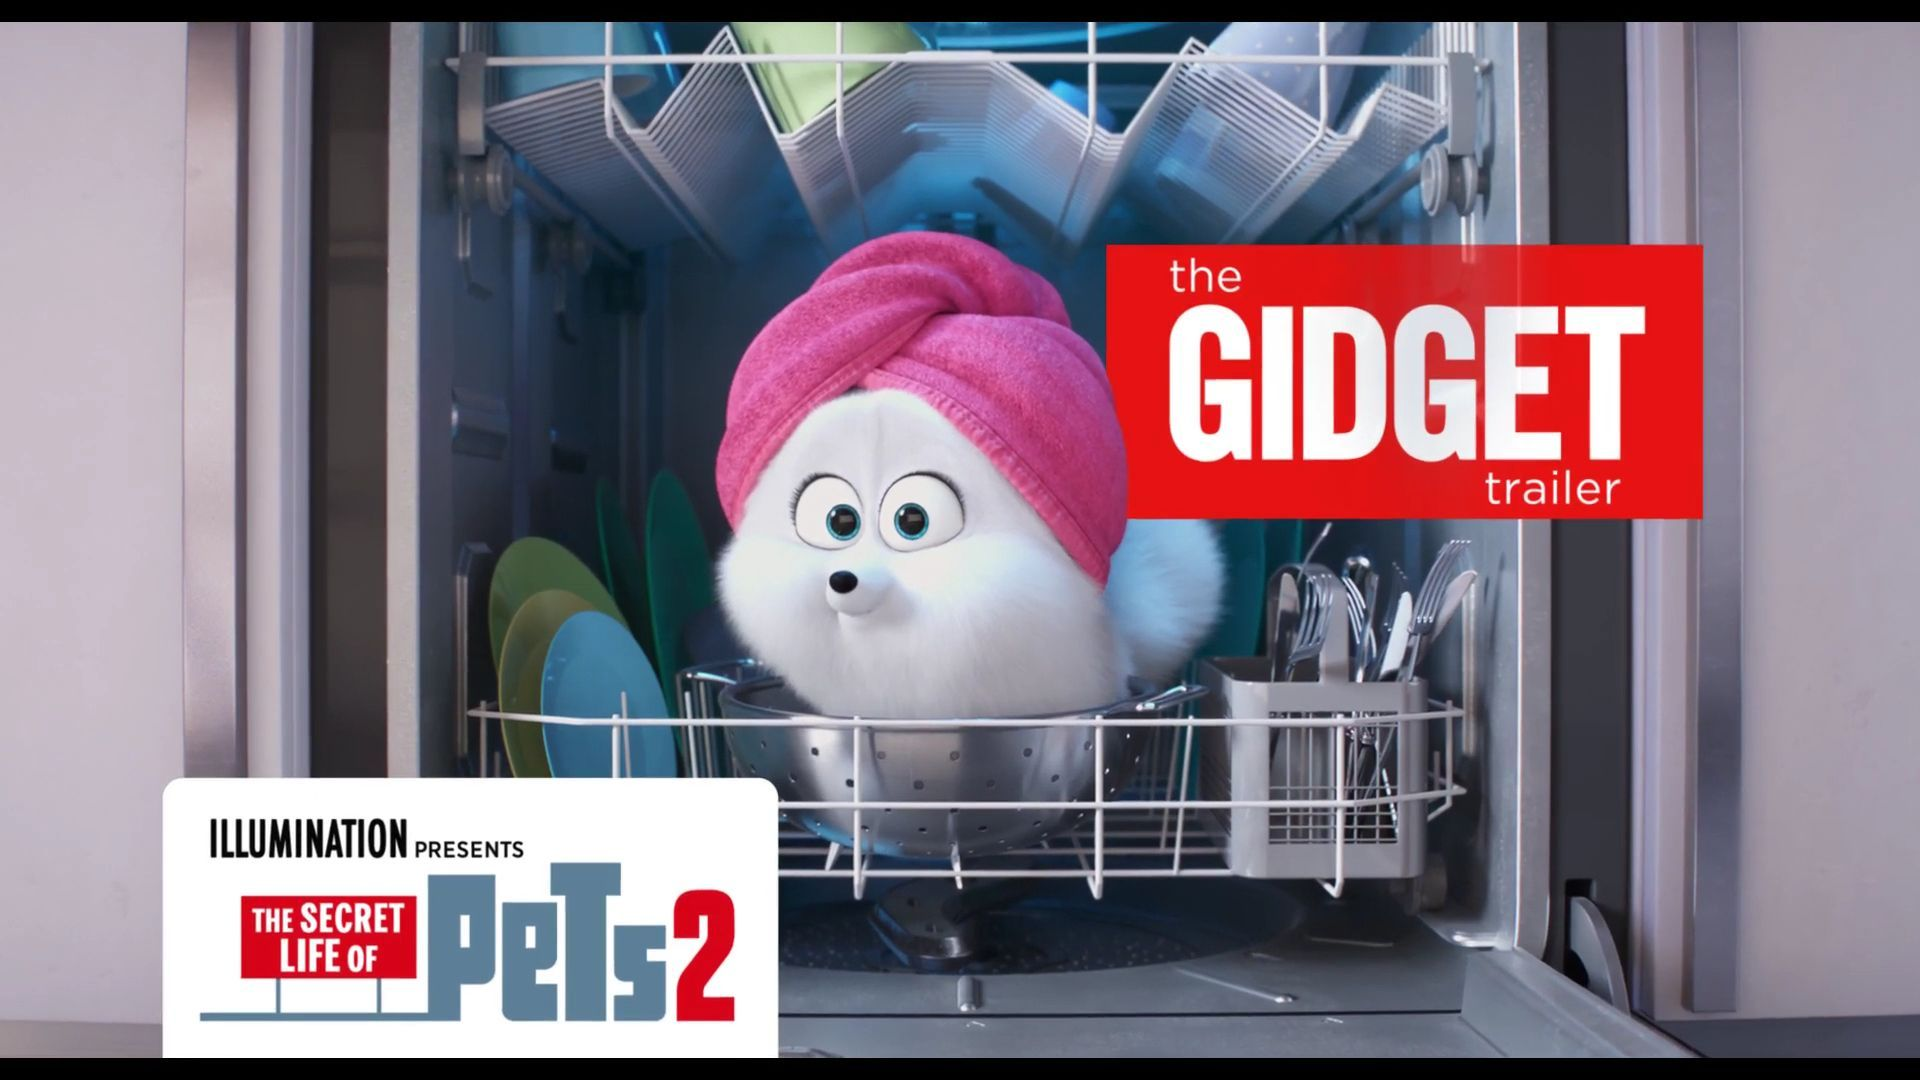 Pin By Carrie Hewitt On Artwork In 2020 Gidget Secret Life Of Pets Addams Family